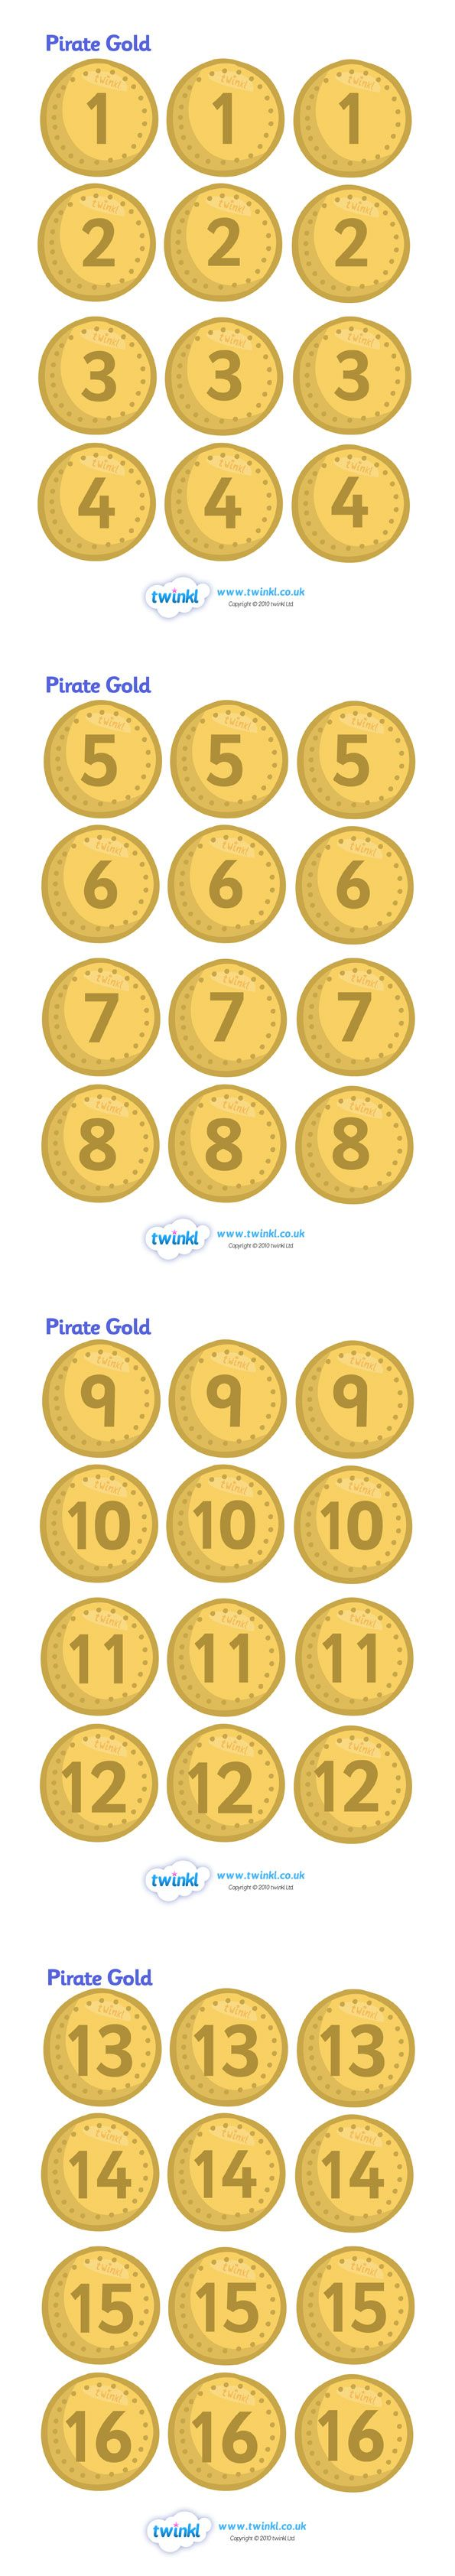 Twinkl Resources >> Pirate Coins >> Classroom printables for Pre-School, Kindergarten, Elementary School and beyond! Activities, Pirates